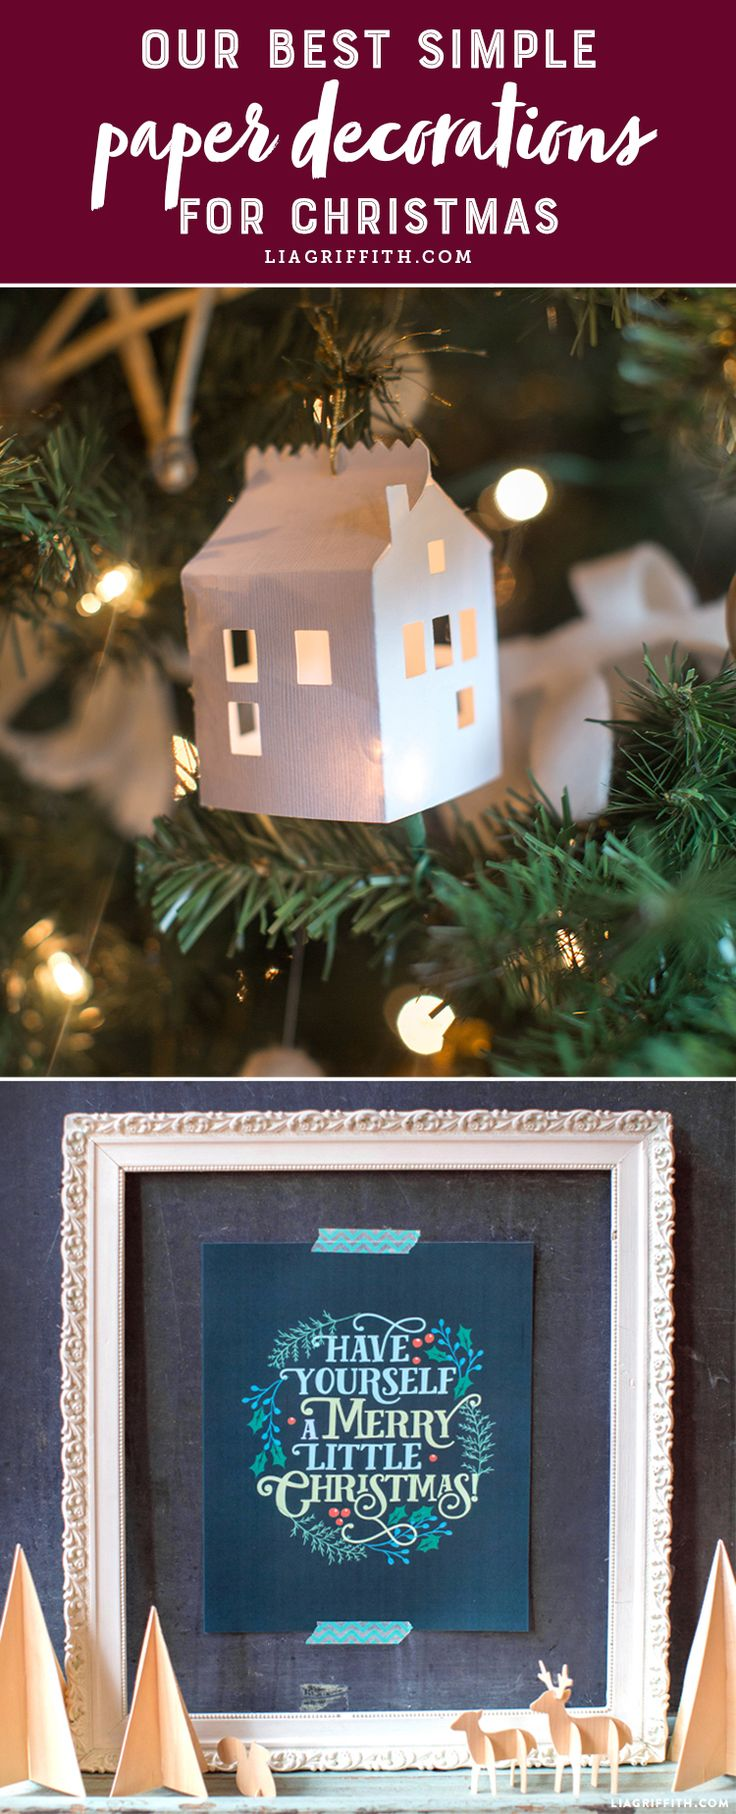 Our Best Simple Paper Decorations for Christmas - Lia Griffith - www.liagriffith.com #diychristmas #diyholiday #diyholidays #paper #paperart #papercraft #papercrafts #diyinspiration #madewithlia